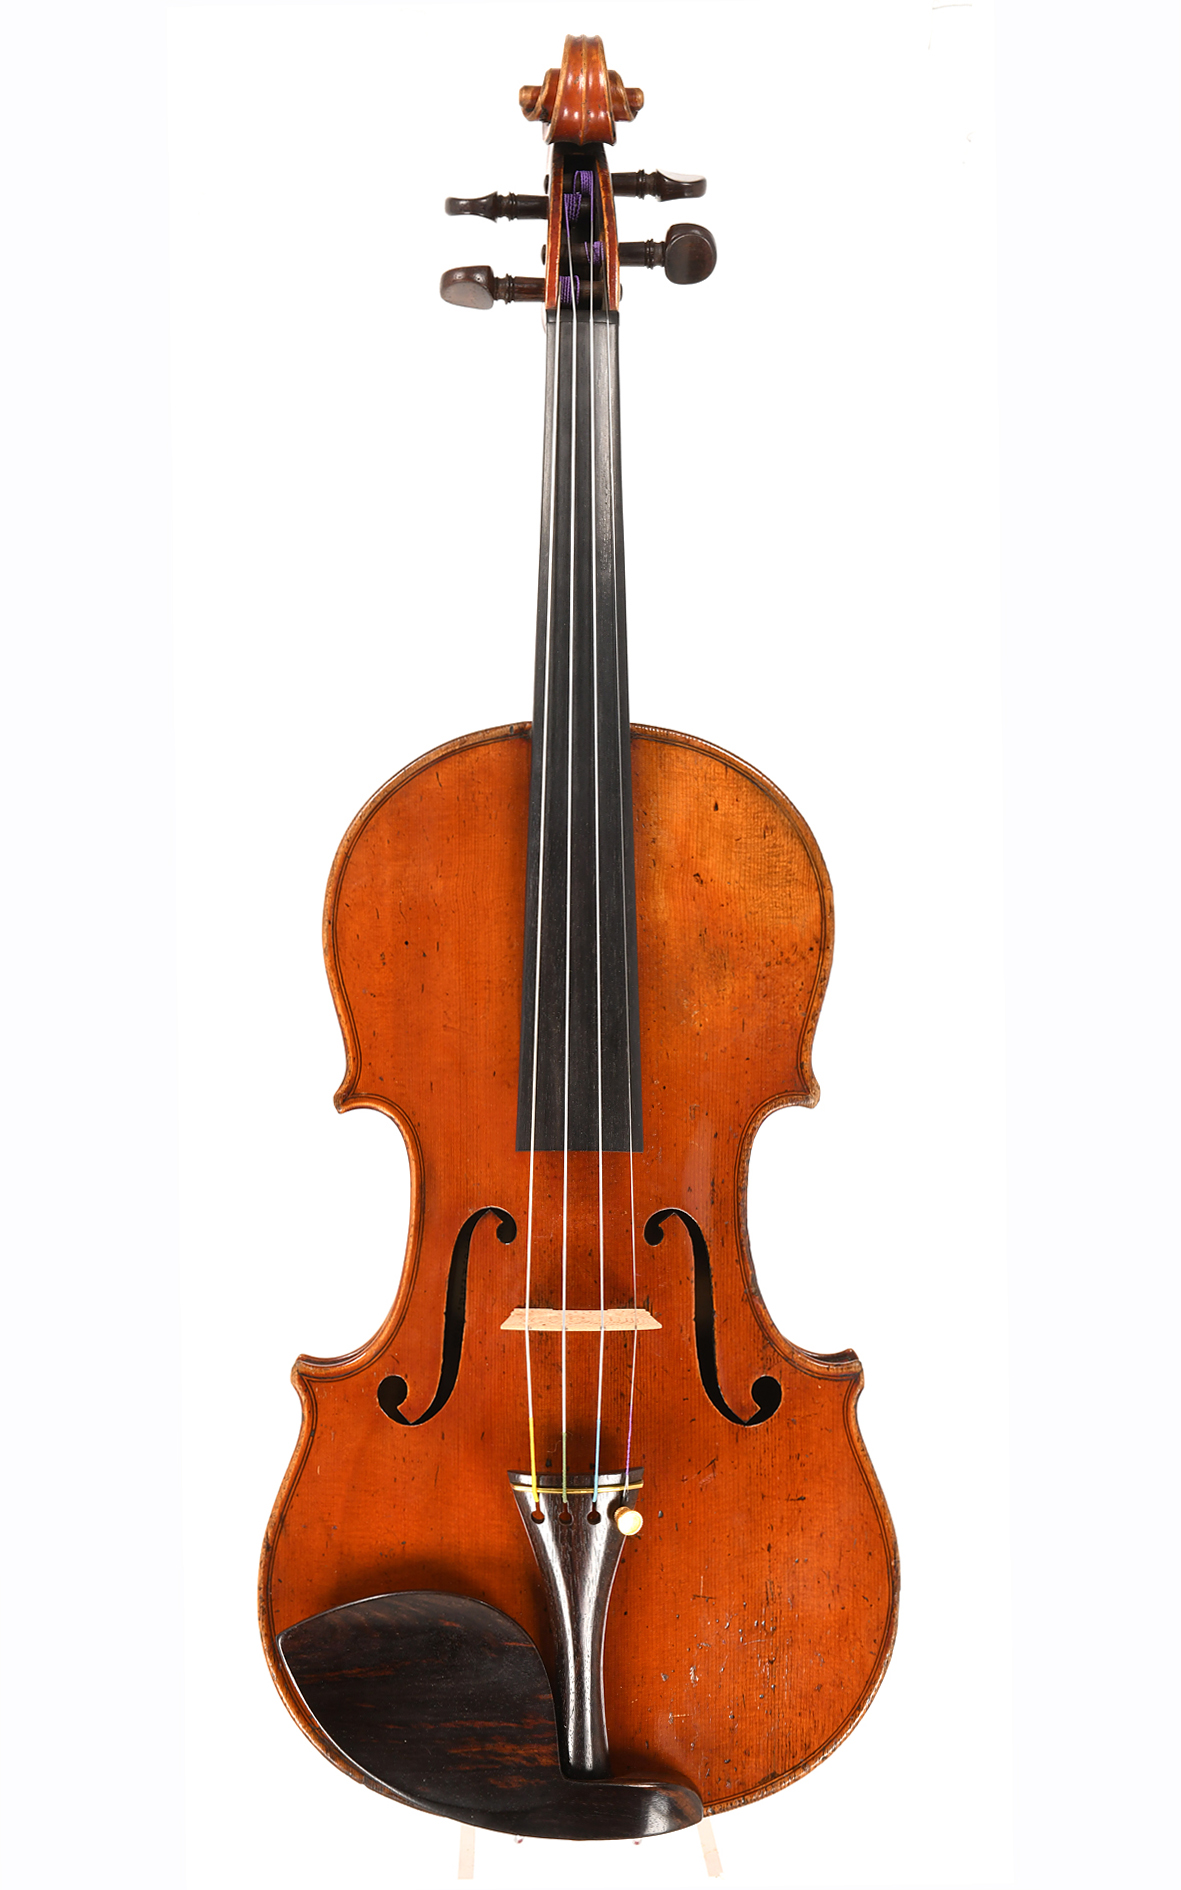 Violin by Jacques-Pierre Thibout, source: Corilon violins